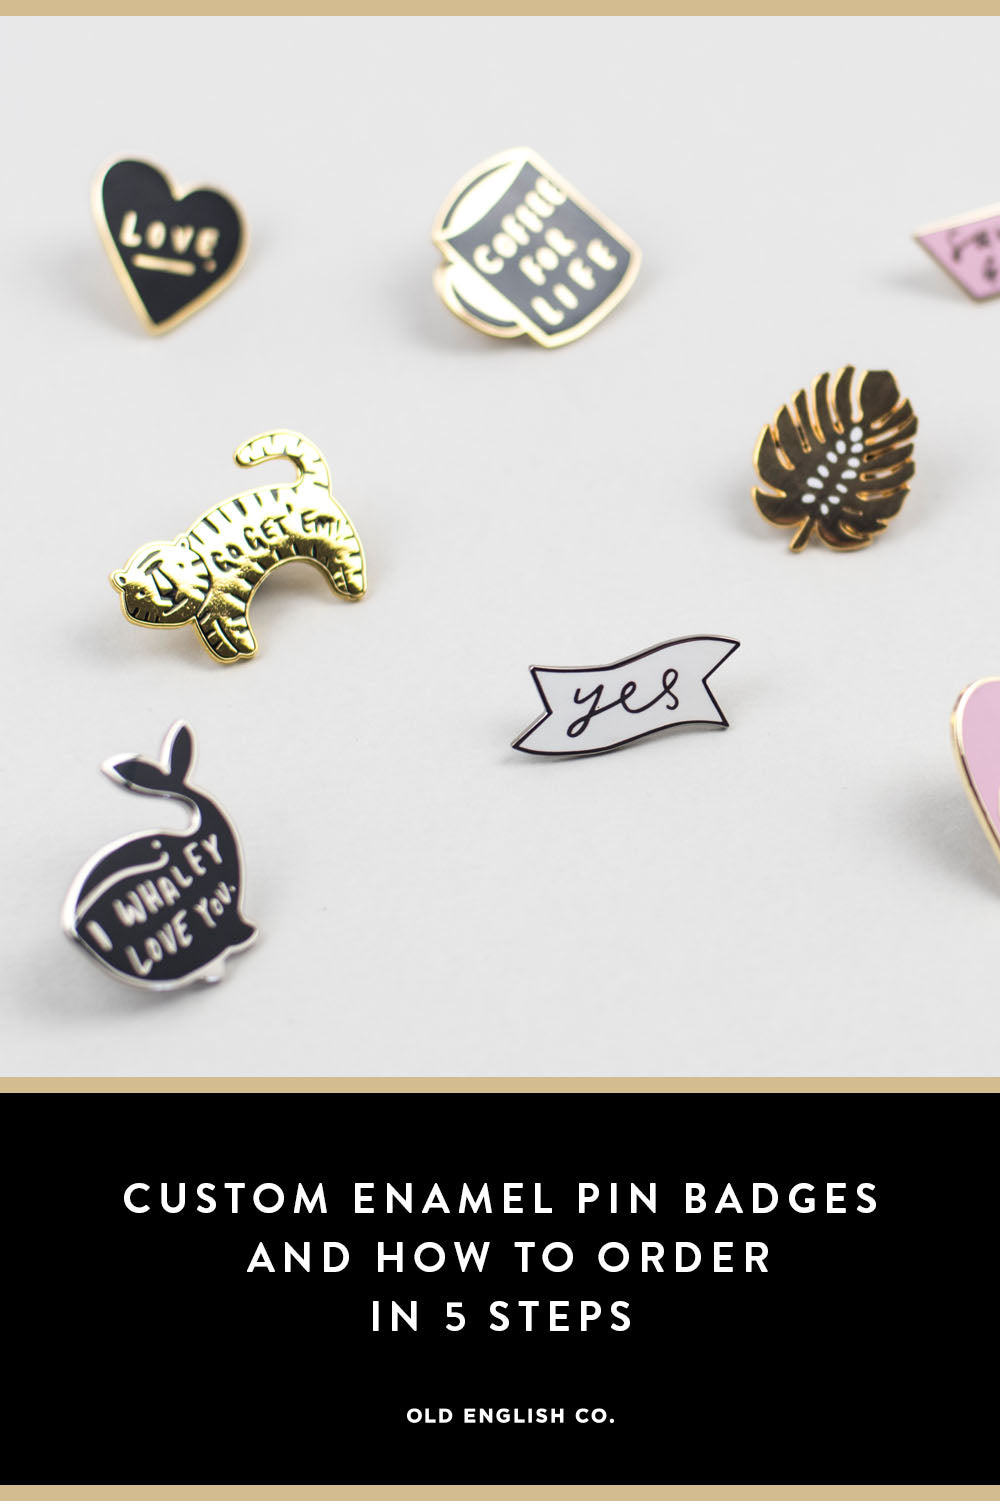 Custom Enamel Pin Badges and How To Order In 5 Steps